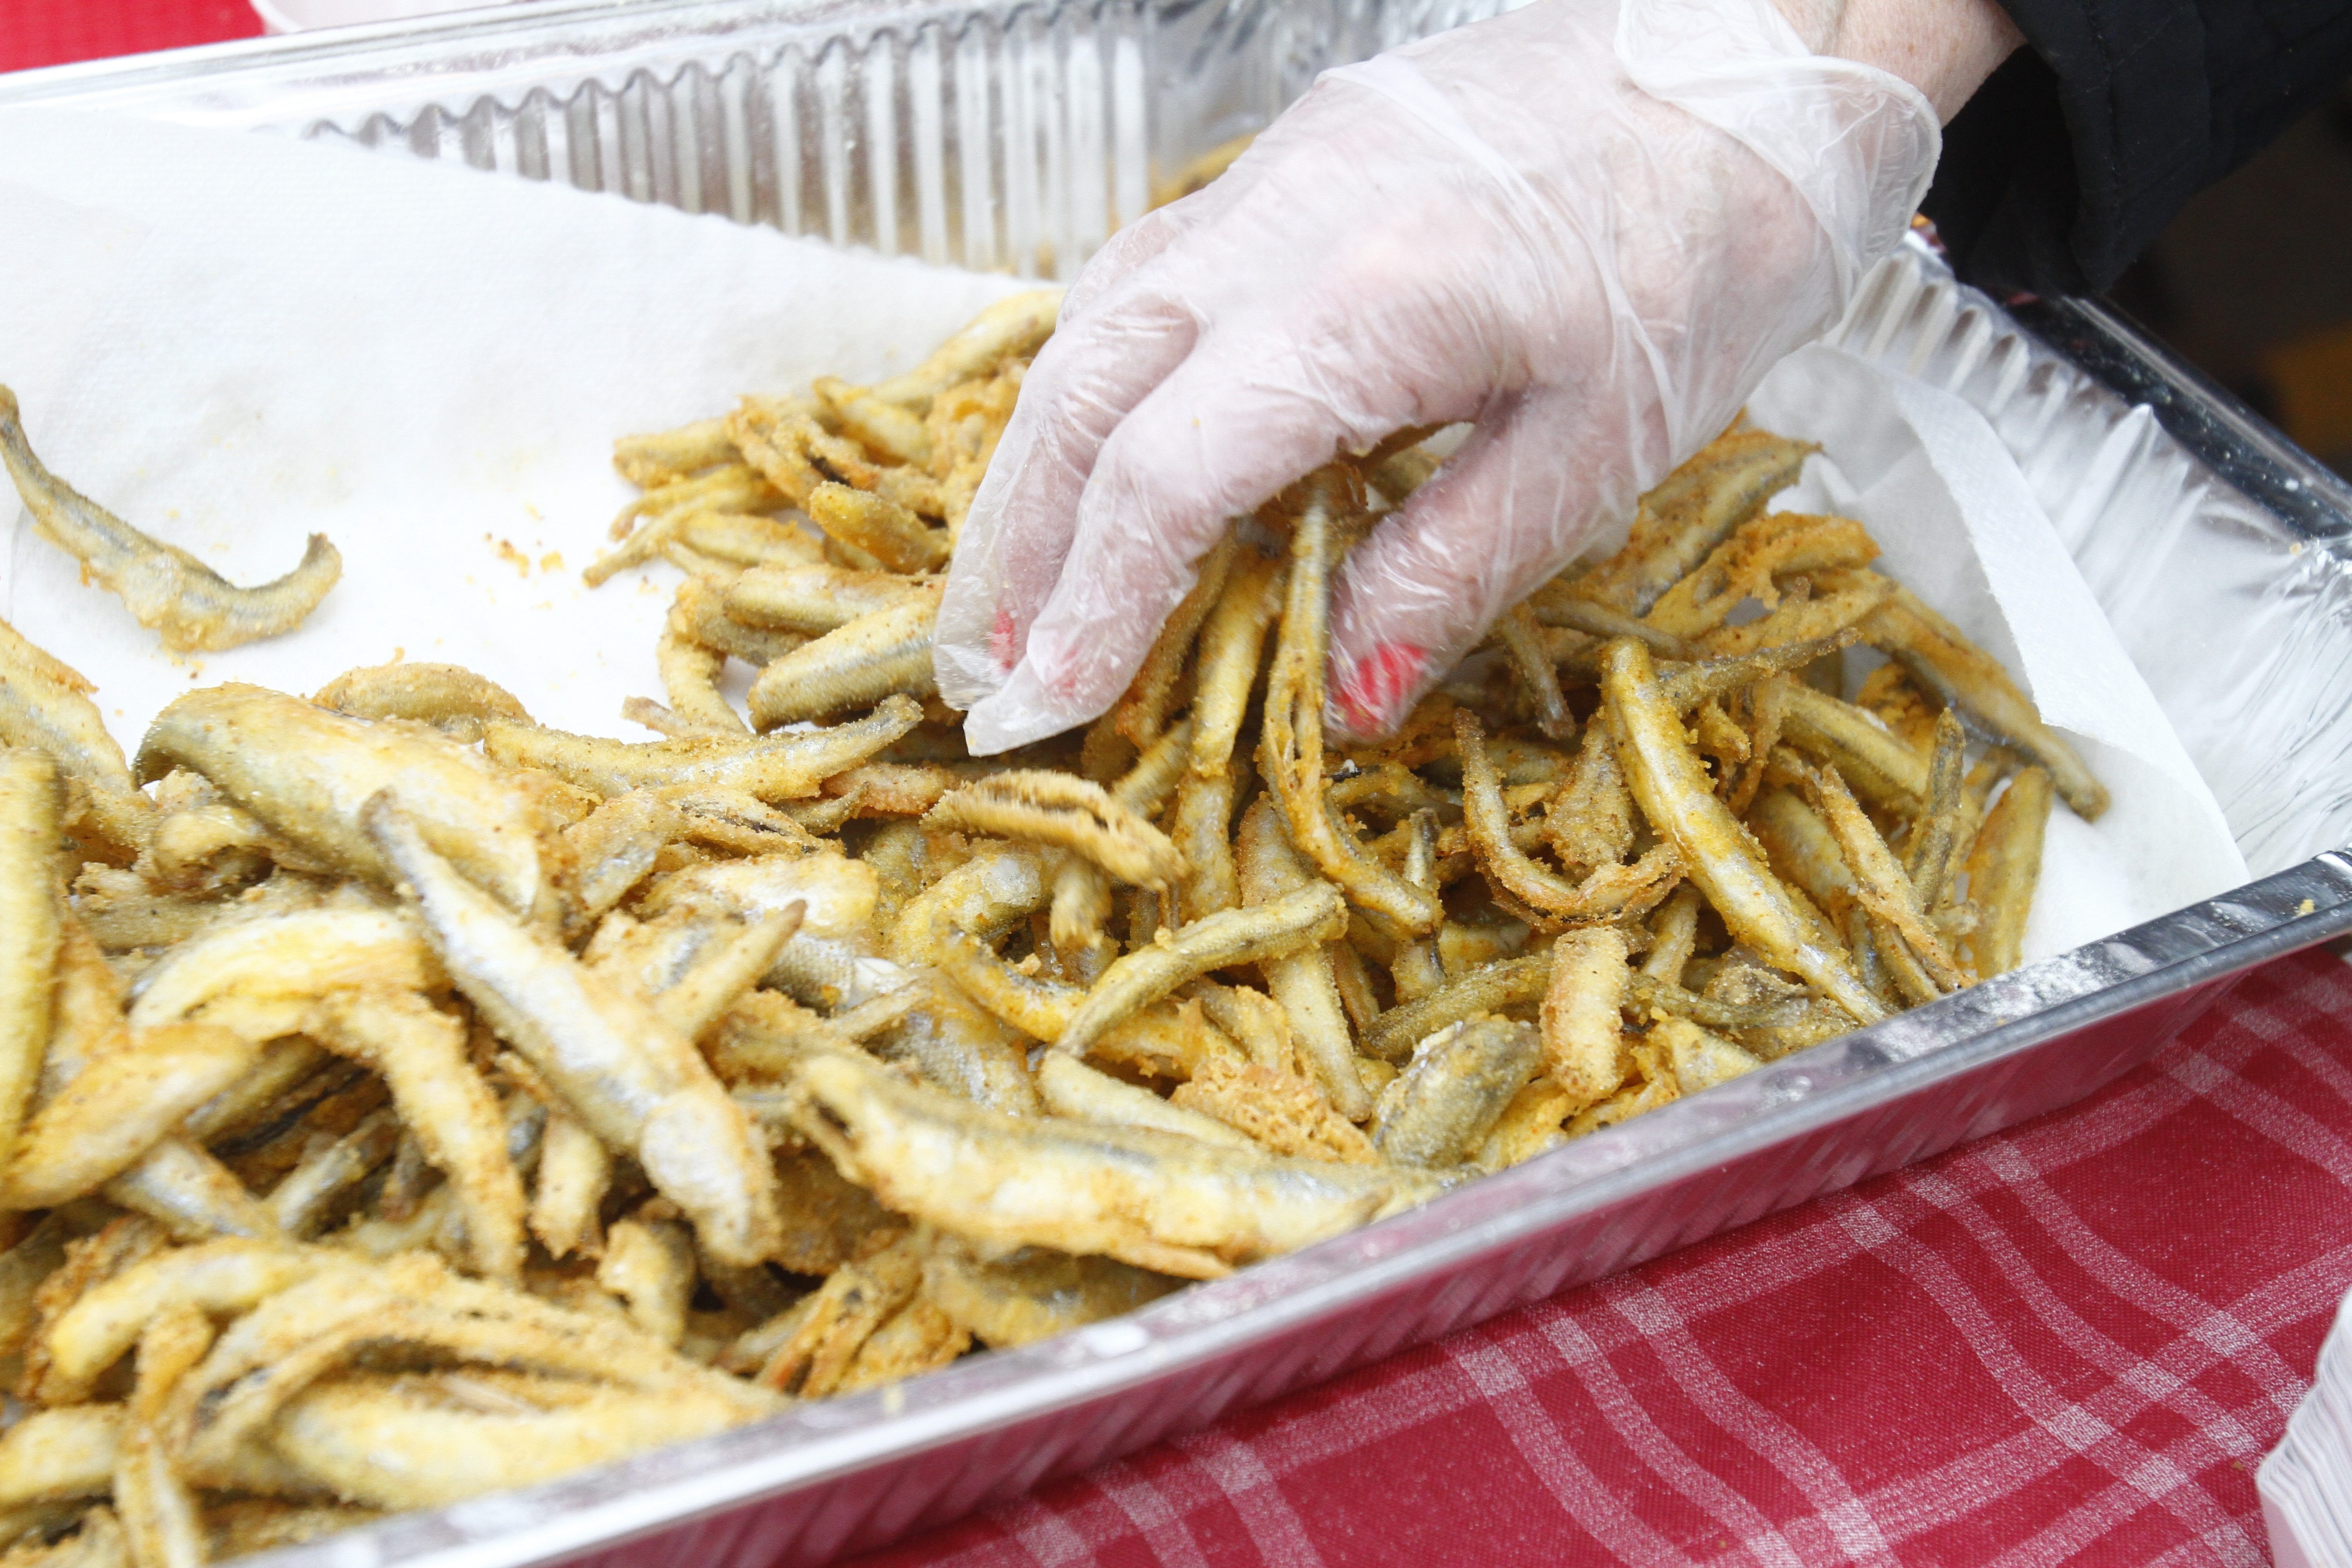 About 400 pounds of fried smelt will be available Friday evening on the waterfront in the Village of Lewiston.